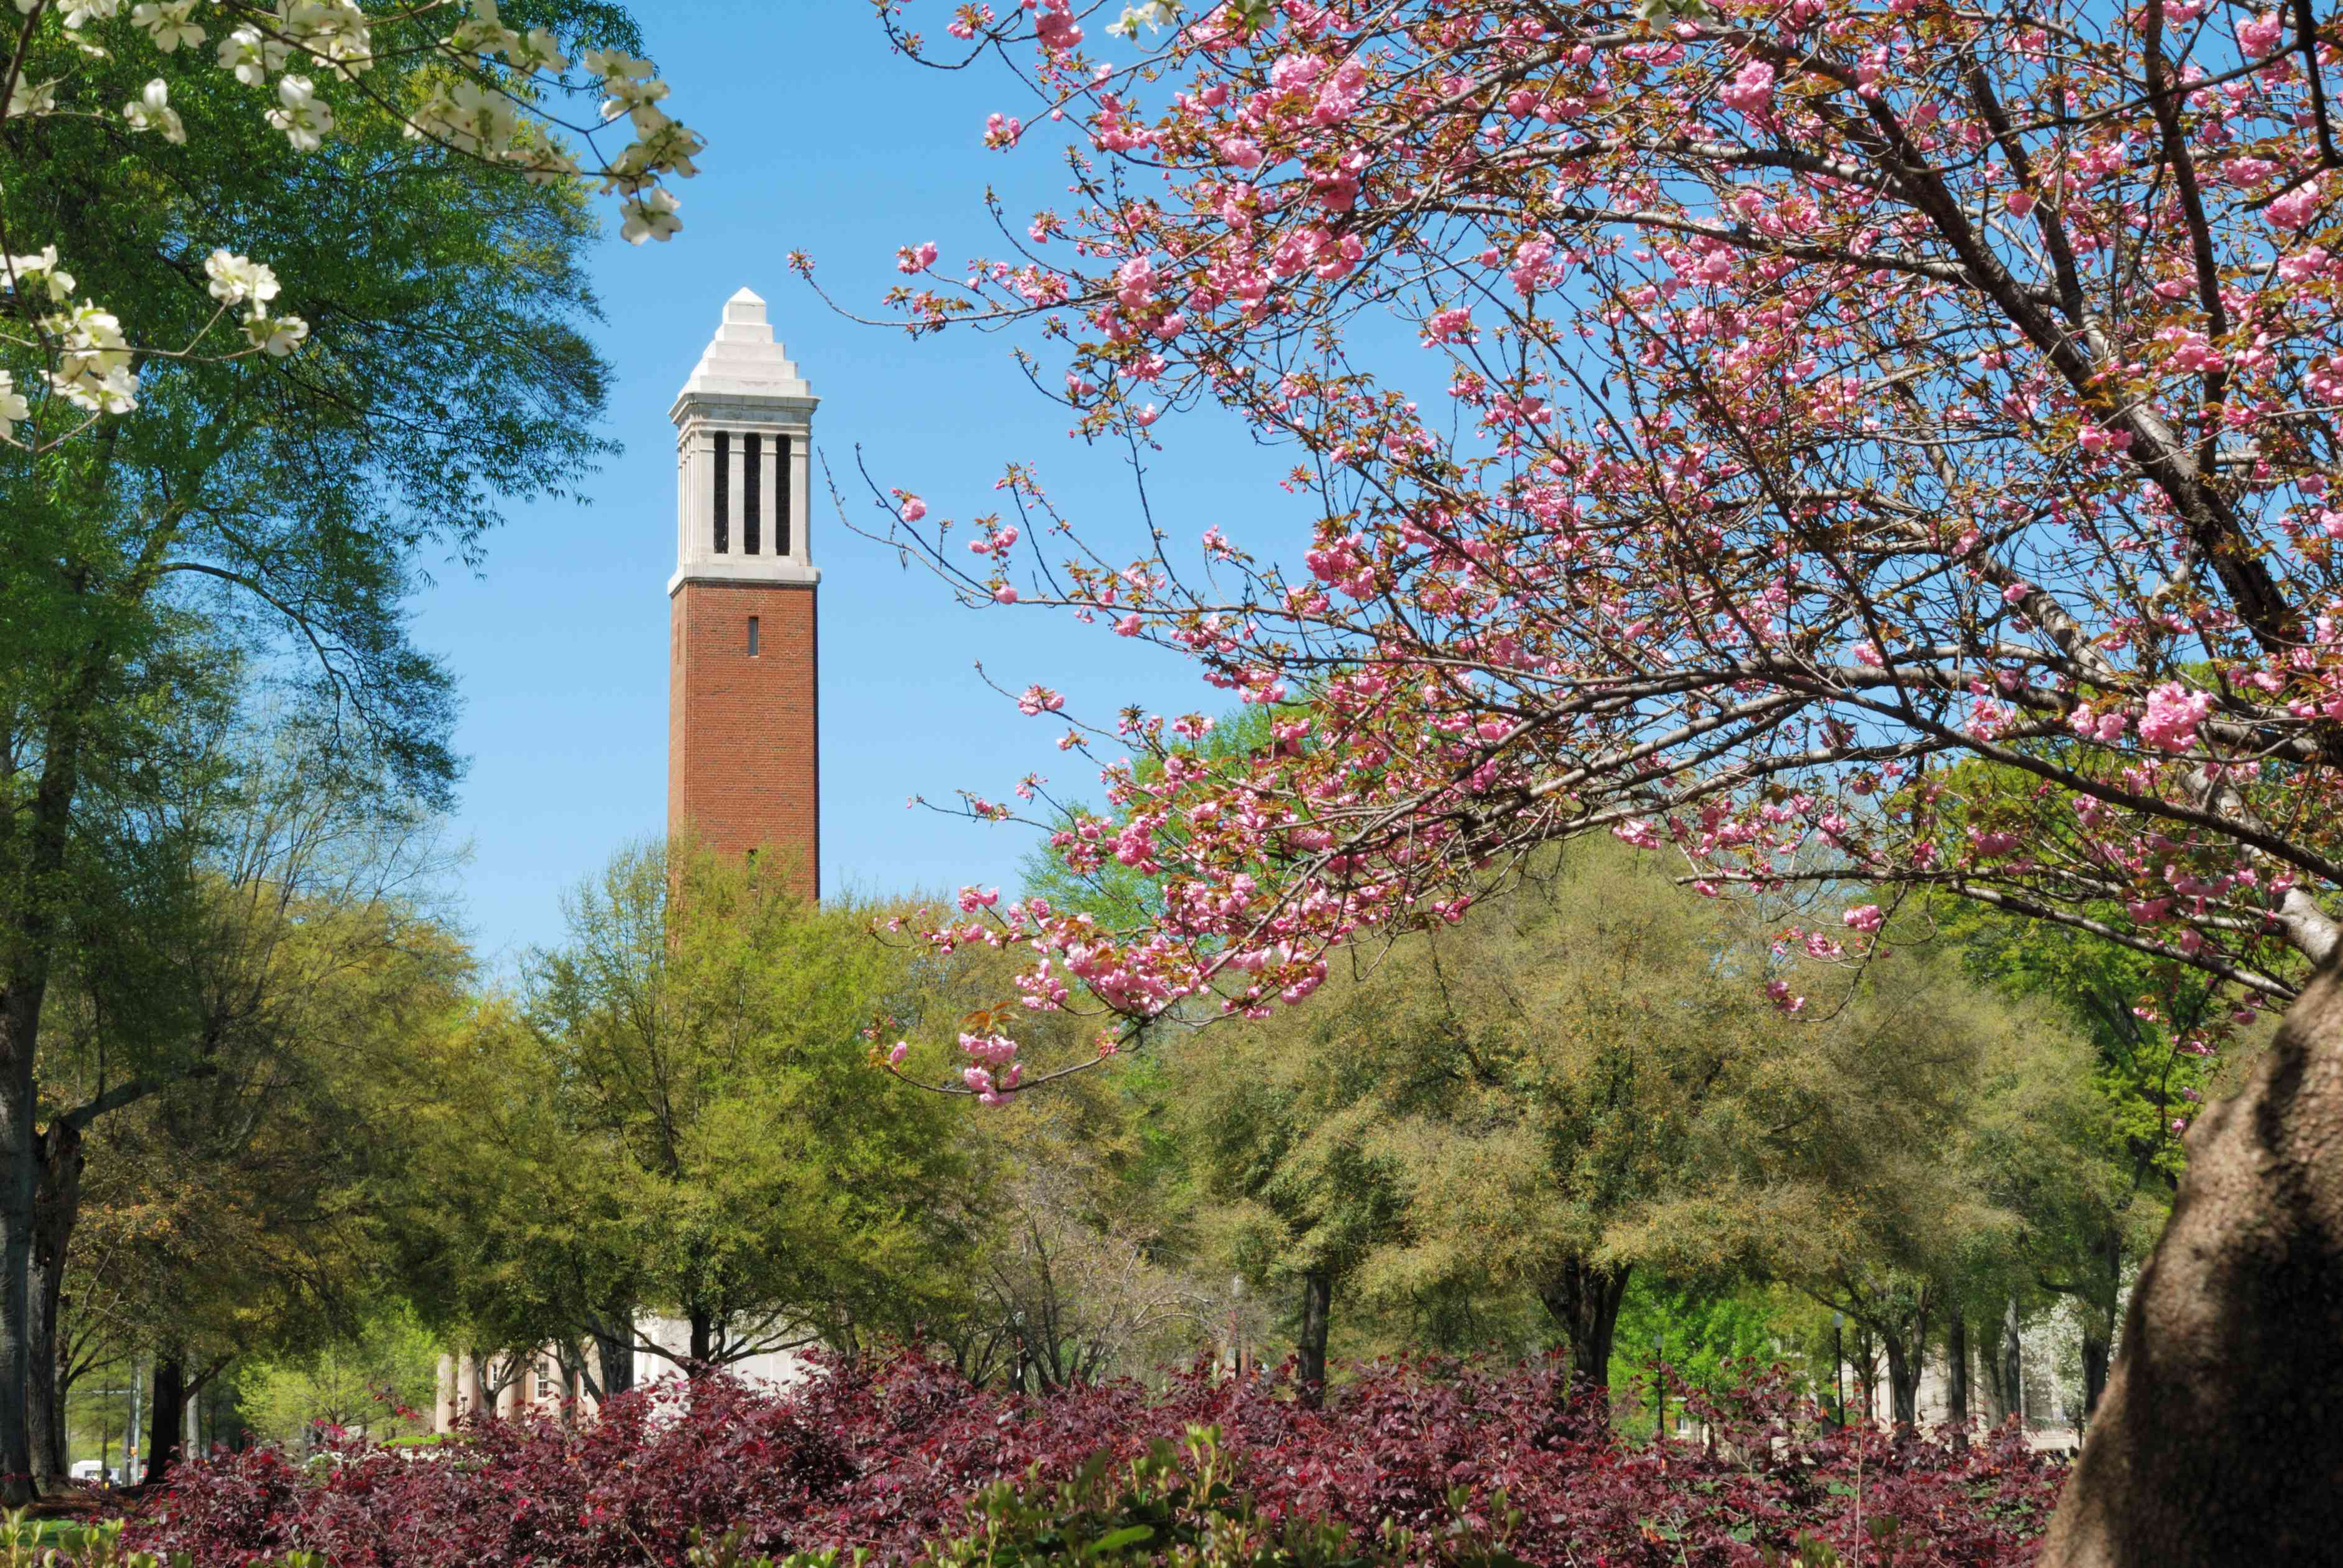 The University of Alabama campus in the spring surrounded by blooming trees